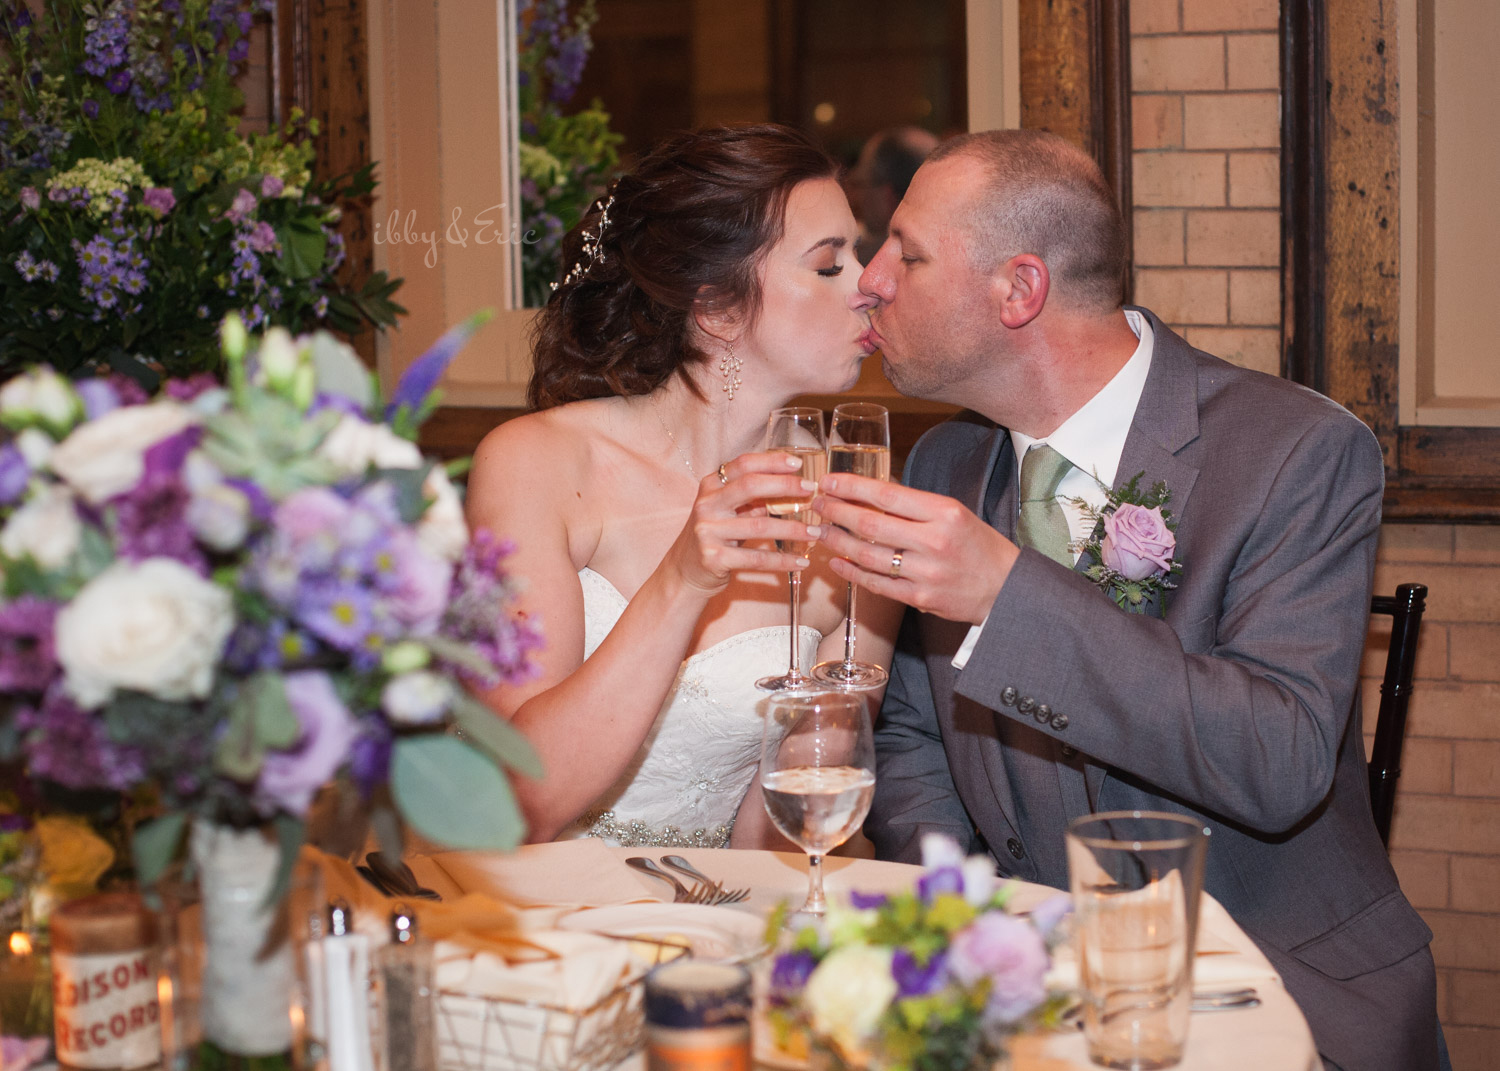 Newlywed bride and groom kiss while toasting champagne flutes